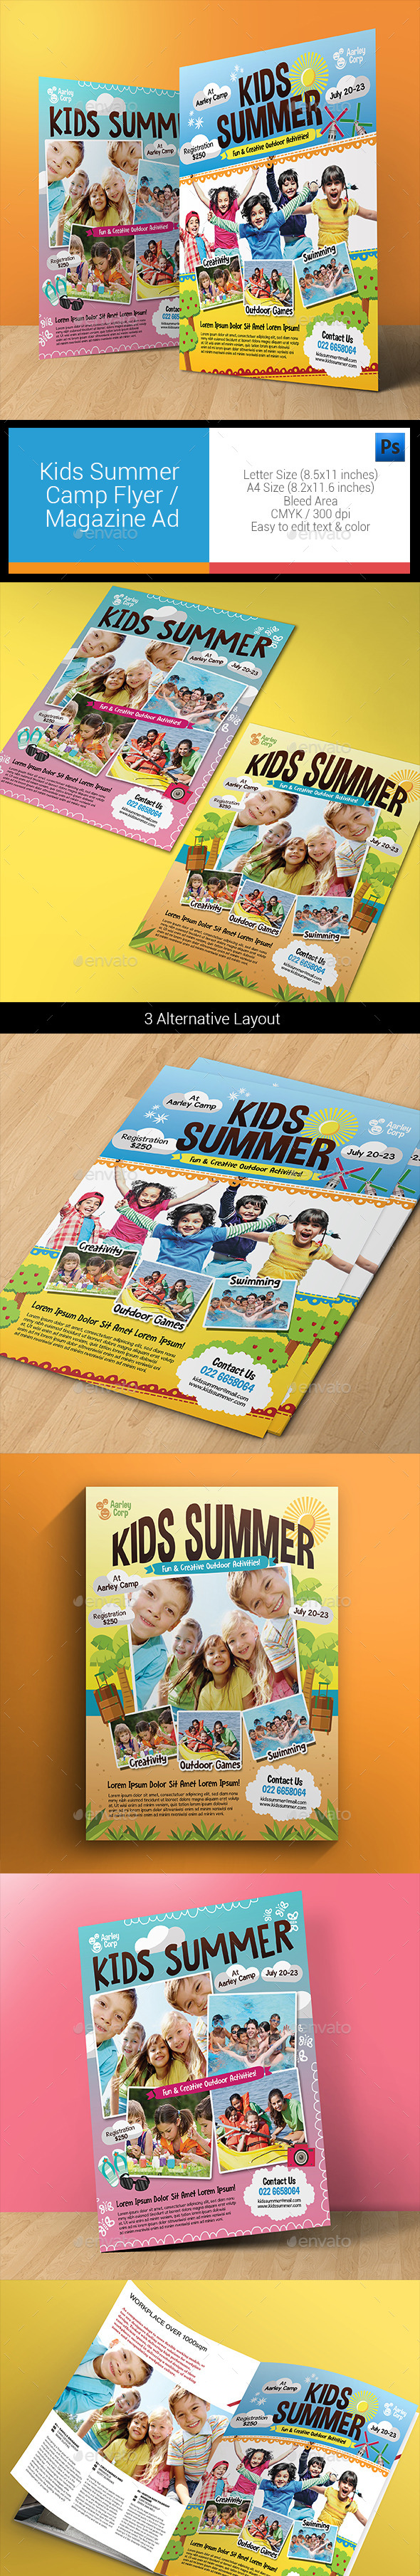 GraphicRiver Kids Summer Camp Flyers Magazine Ad 11903465